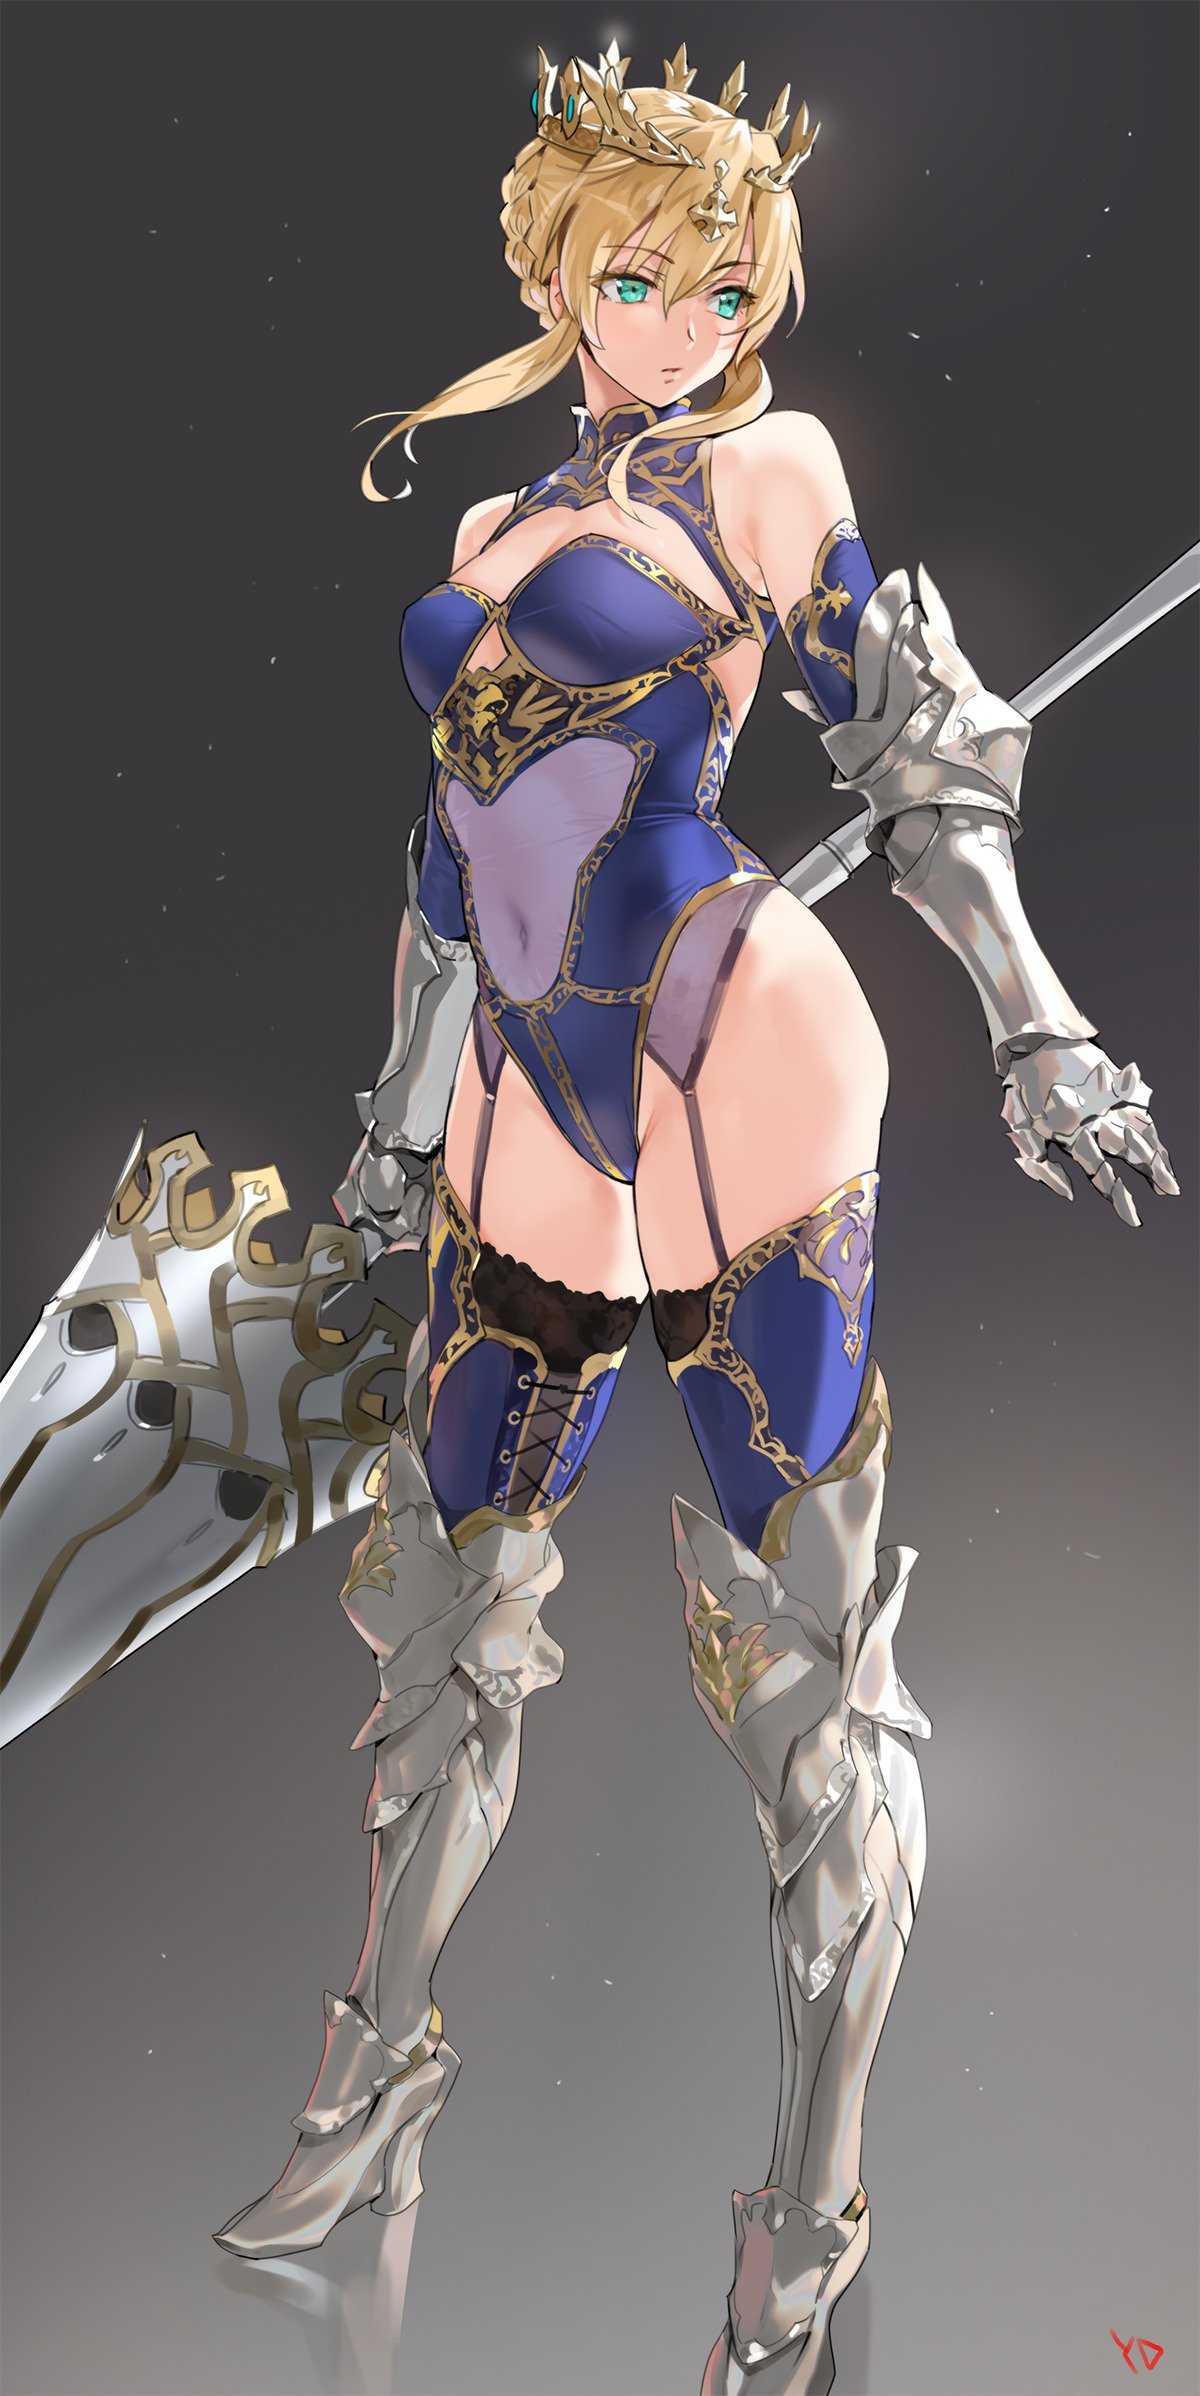 1girl ahoge armored_boots artoria_pendragon_(all) artoria_pendragon_(lancer) bangs bare_shoulders blonde_hair blue_legwear blue_leotard boots braid breasts covered_navel crown fate/grand_order fate_(series) french_braid garter_straps gauntlets gradient gradient_background green_eyes hair_between_eyes highres hips knee_boots lance leotard looking_to_the_side medium_breasts parted_lips polearm rhongomyniad sidelocks solo thighs weapon yang-do